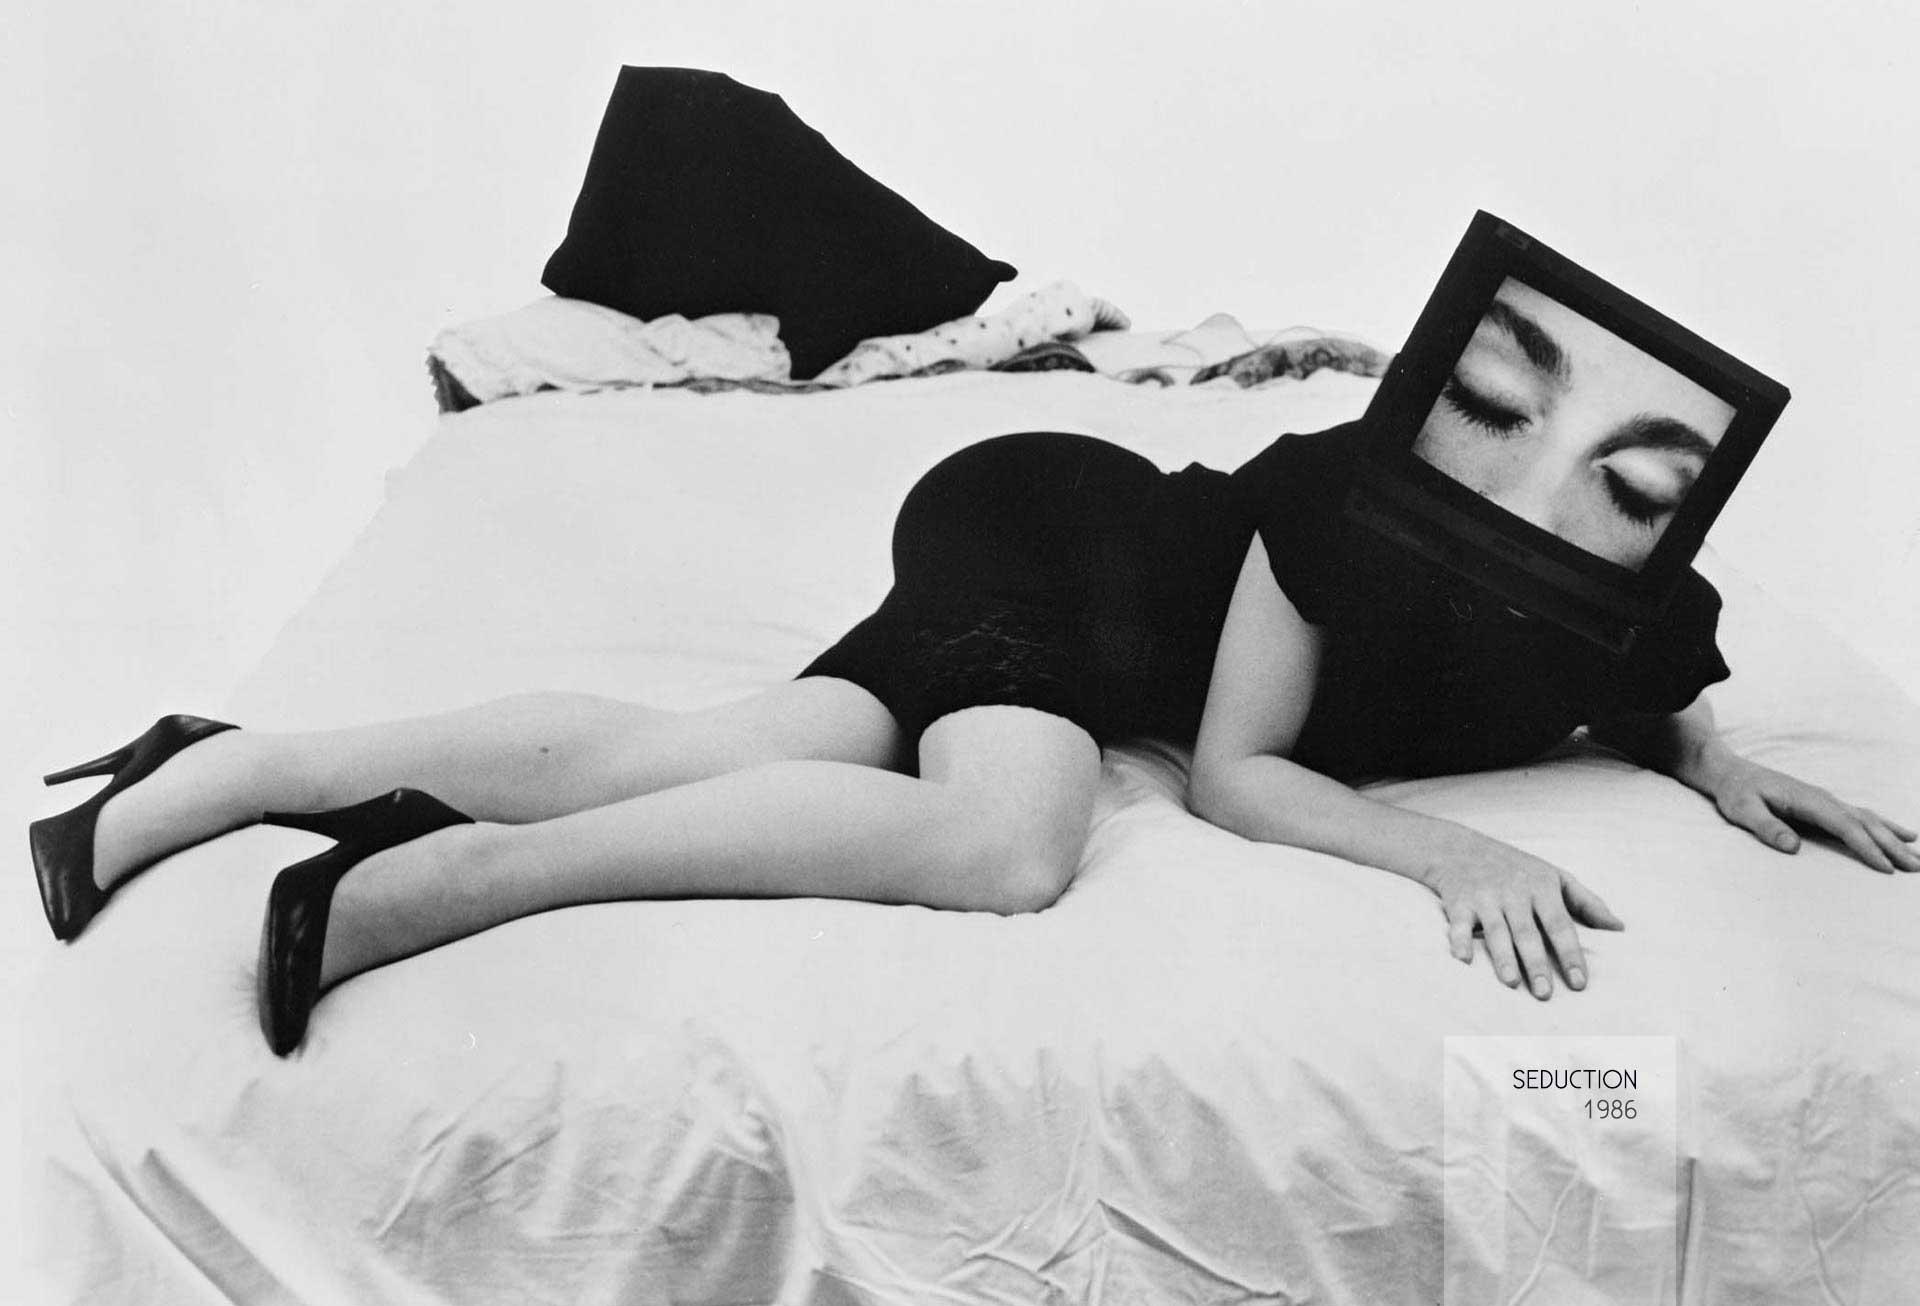 http://www.nytimes.com/2015/02/15/arts/design/lynn-hershman-leeson-explores-technology-and-the-split-self.html?ref=arts